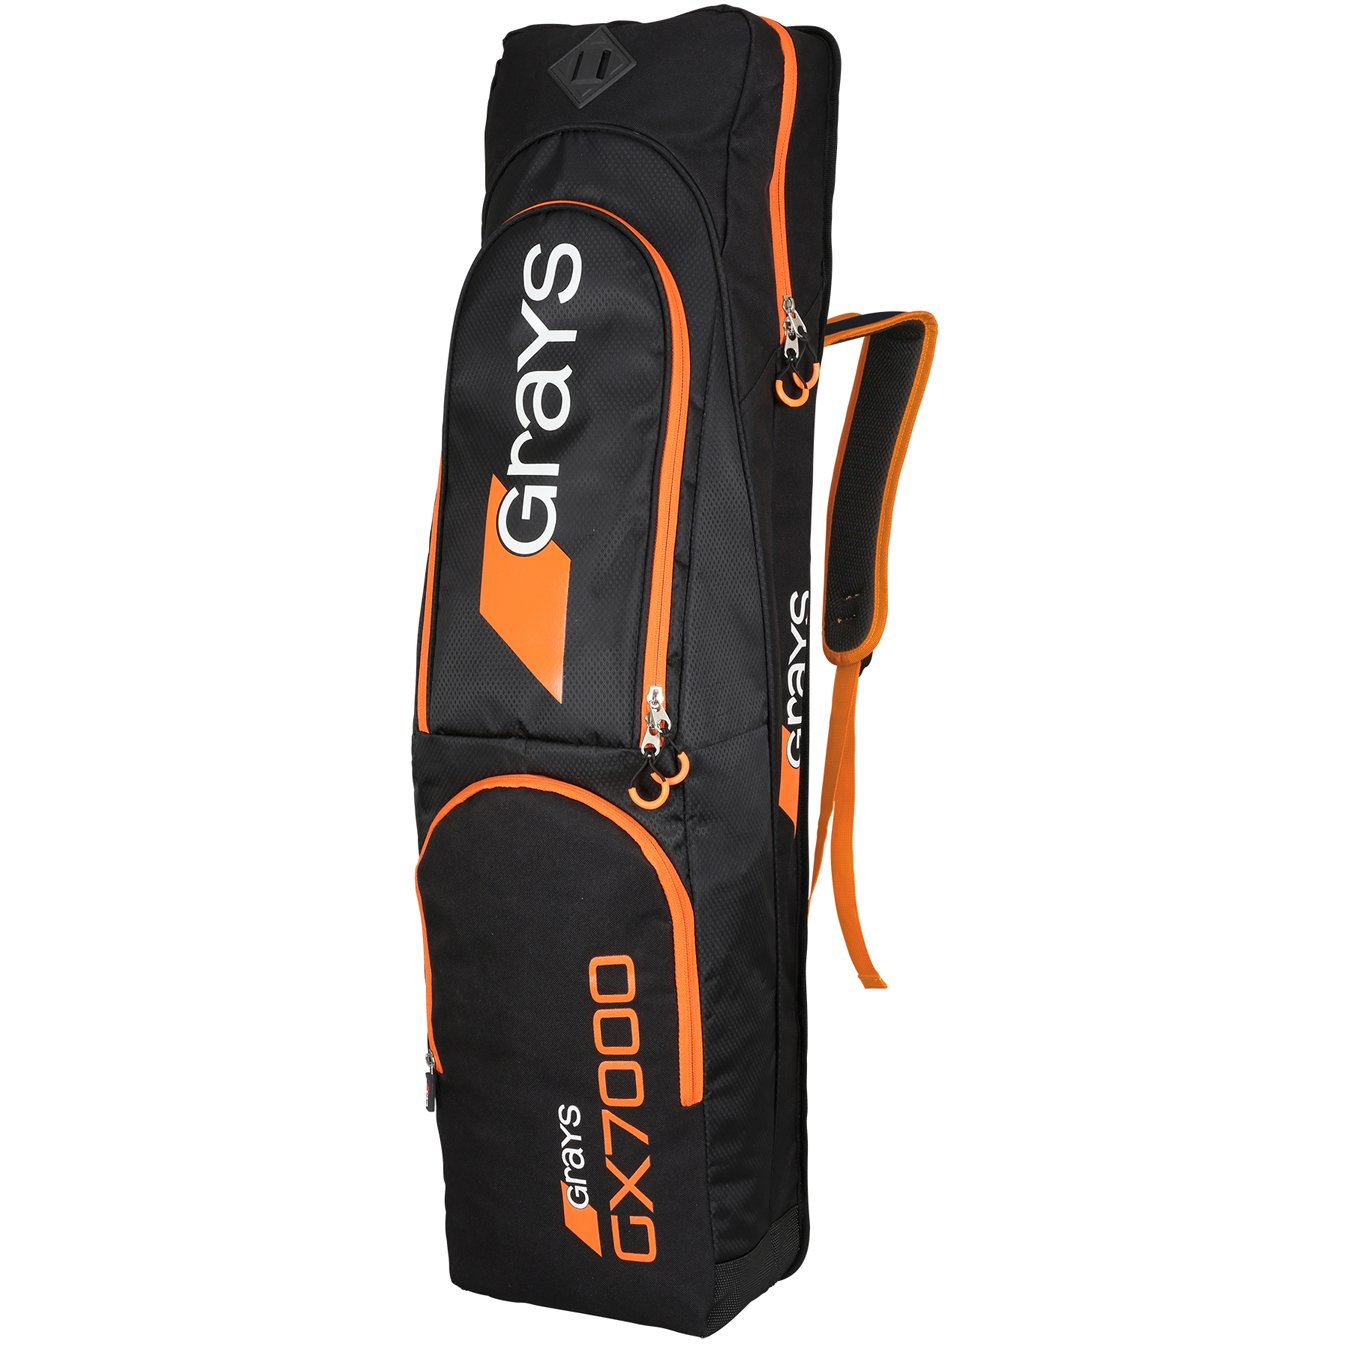 GRAYS GX 7000 HOCKEY KITBAG - BLACK/ORANGE by Grays 6601107